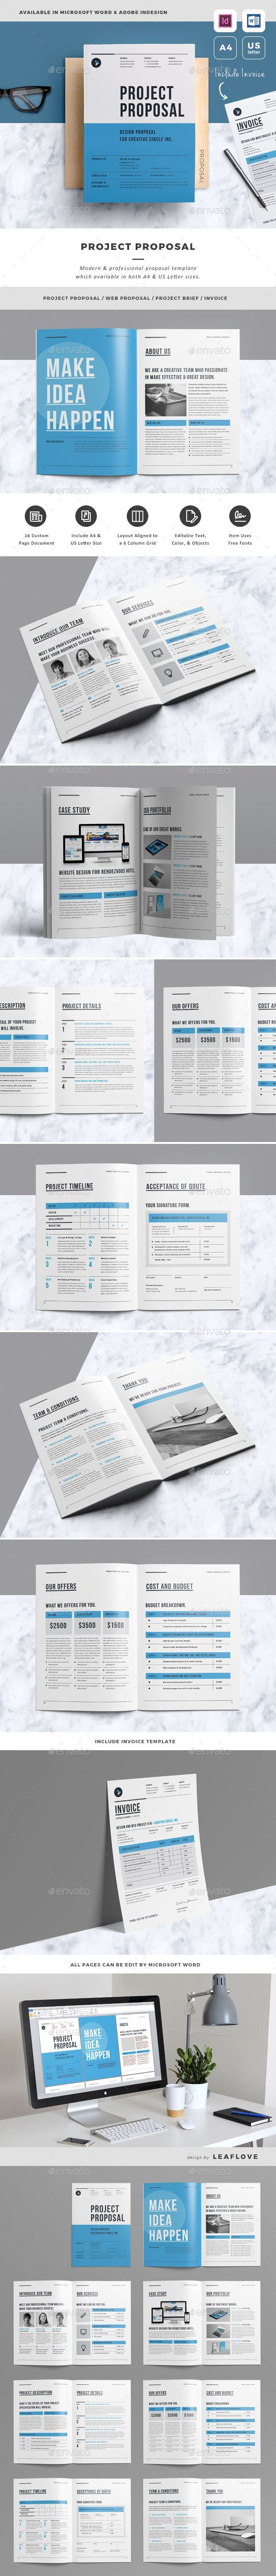 Proposal Template InDesign INDD - 16 Pages, A4 & US Letter Size